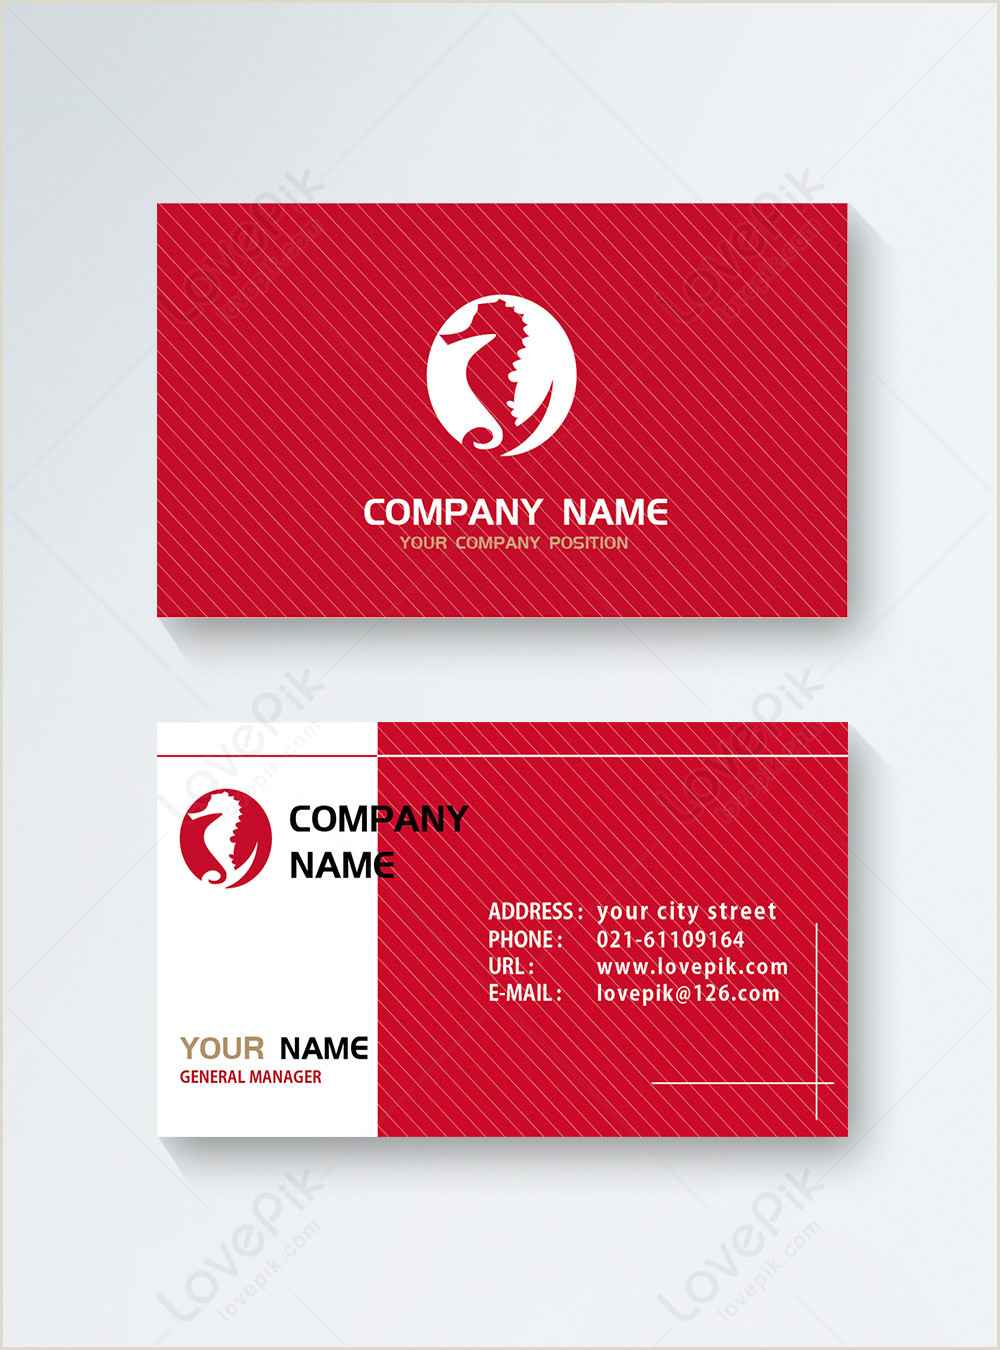 Real Estate Business Cards Samples Real Estate Business Card Template Image Picture Free